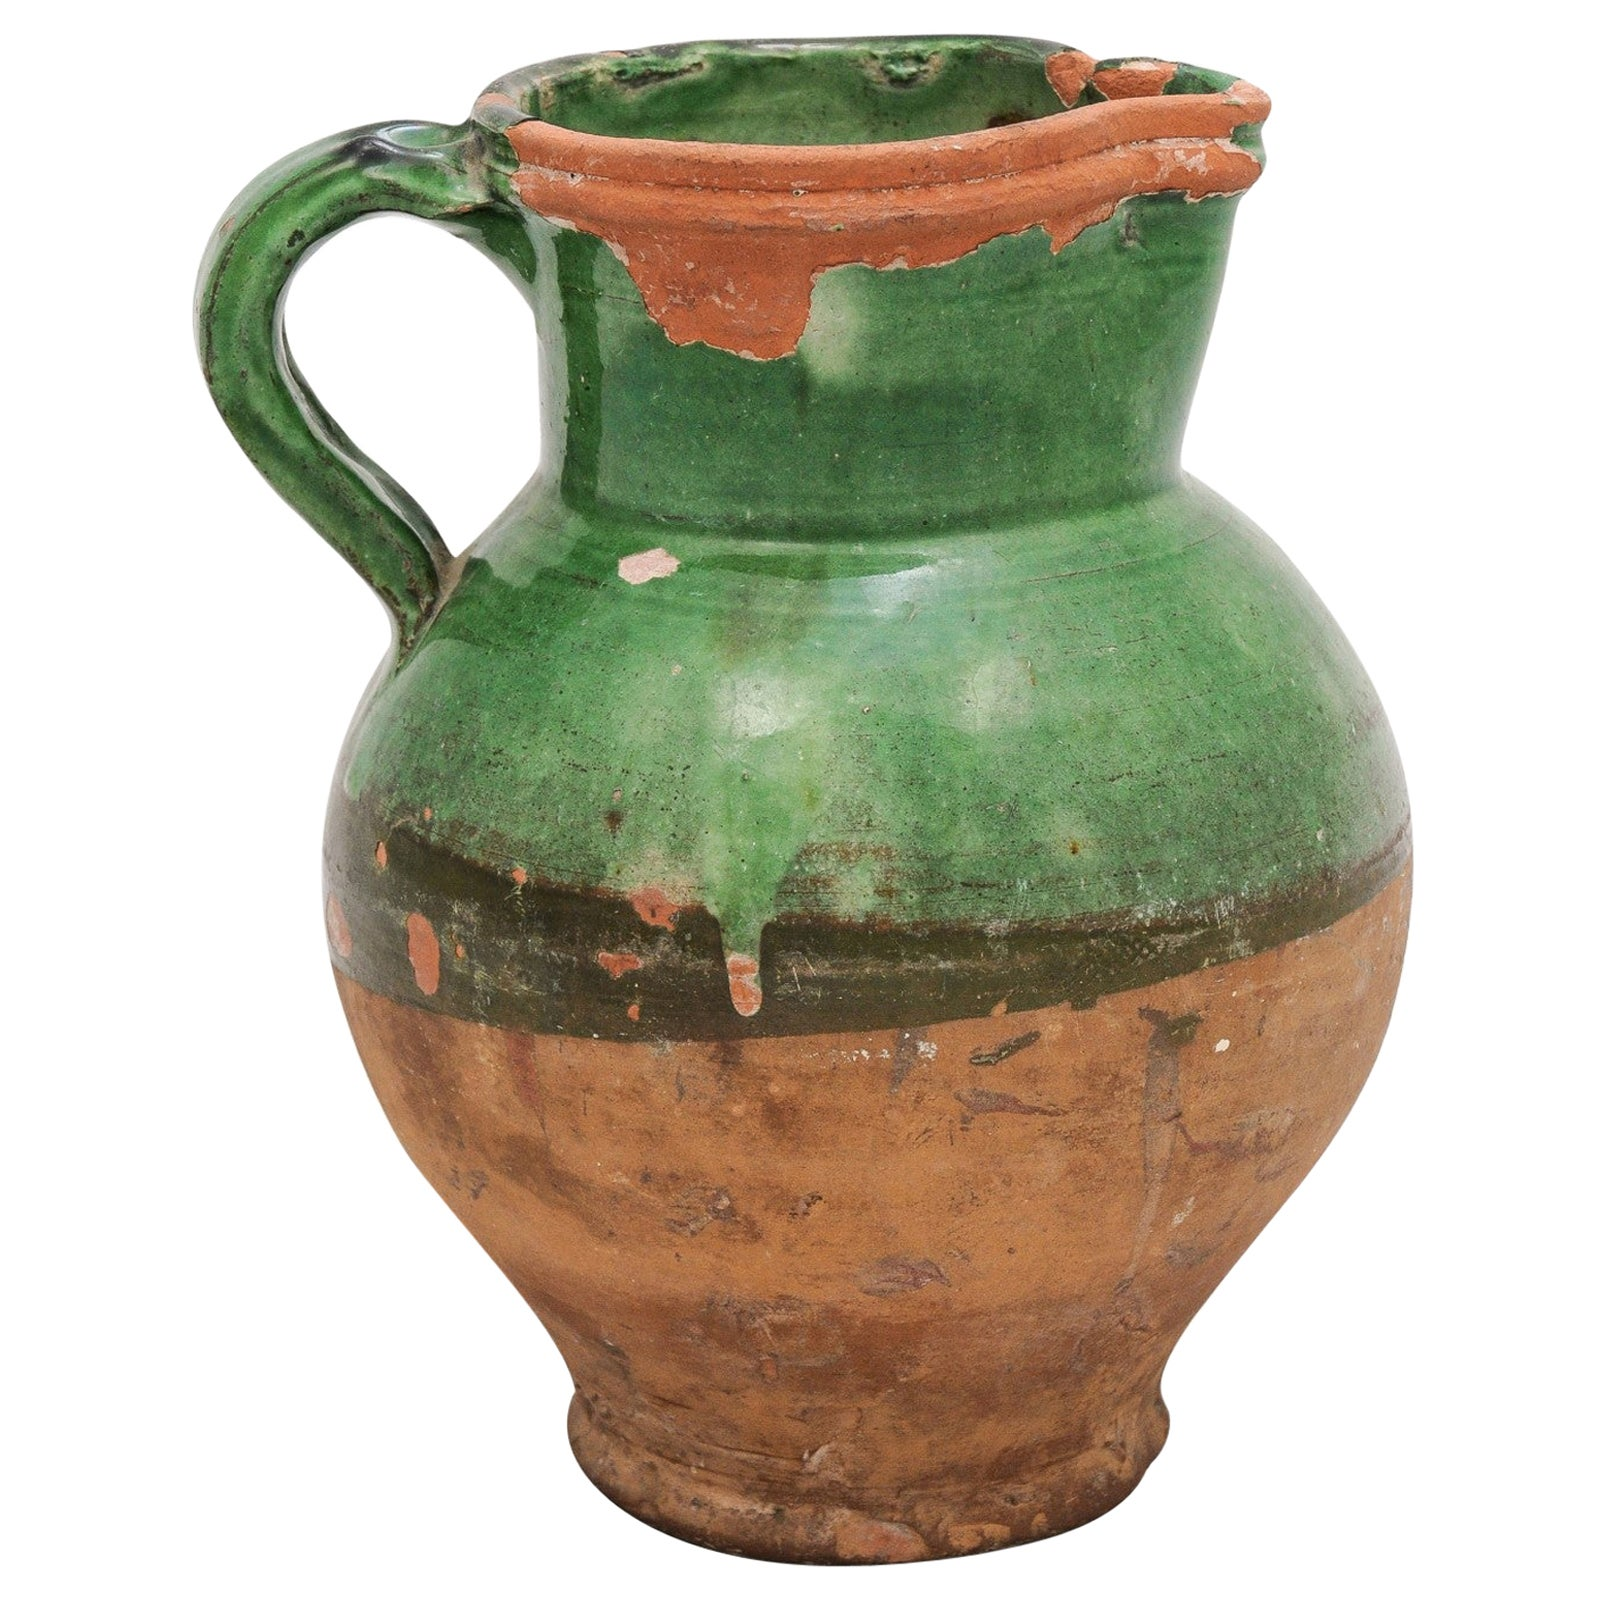 French Provincial 19th Century Green Glazed Pitcher with Distressed Patina